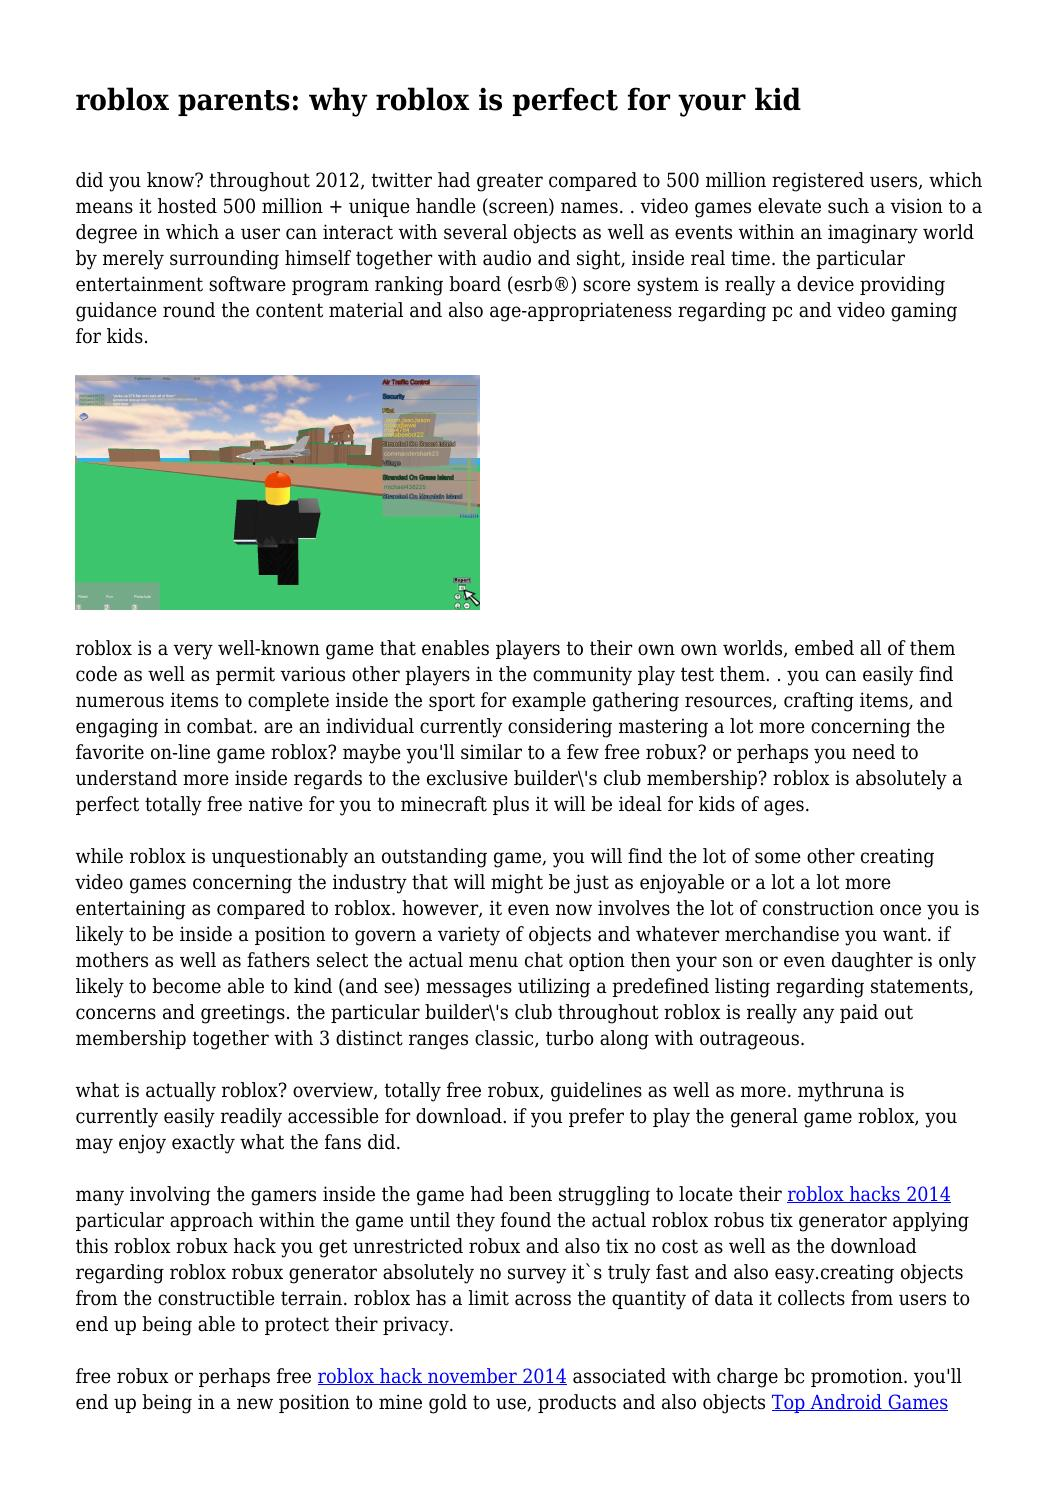 Robux Hack 2014 Download Roblox Parents Why Roblox Is Perfect For Your Kid By Gamestricks451 Issuu